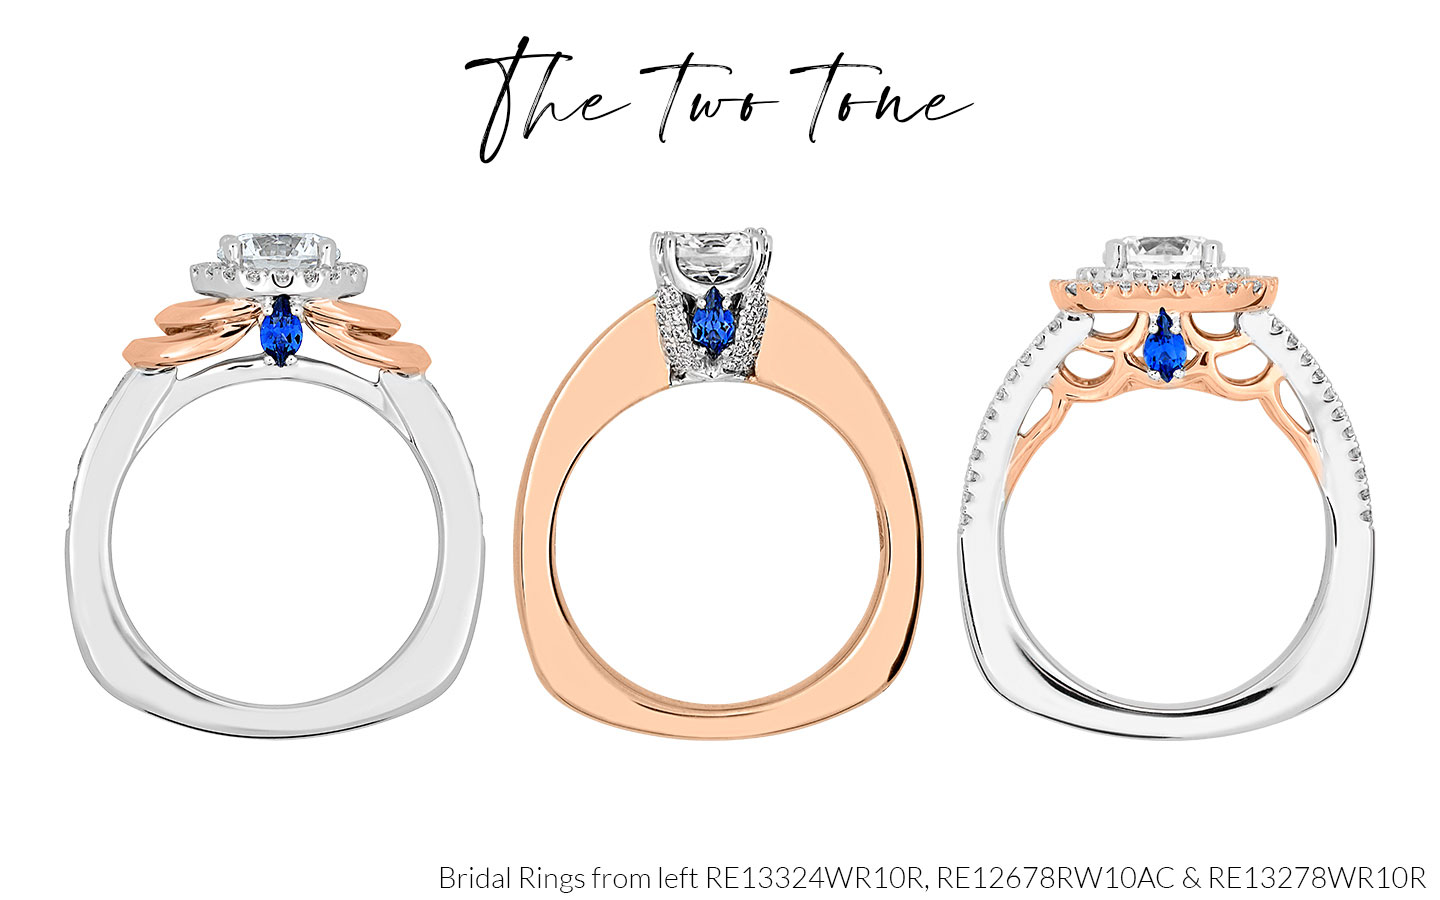 Two Tone Engagement Rings RE13324WR10R, RE12678RW10AC and RE13278WR10R